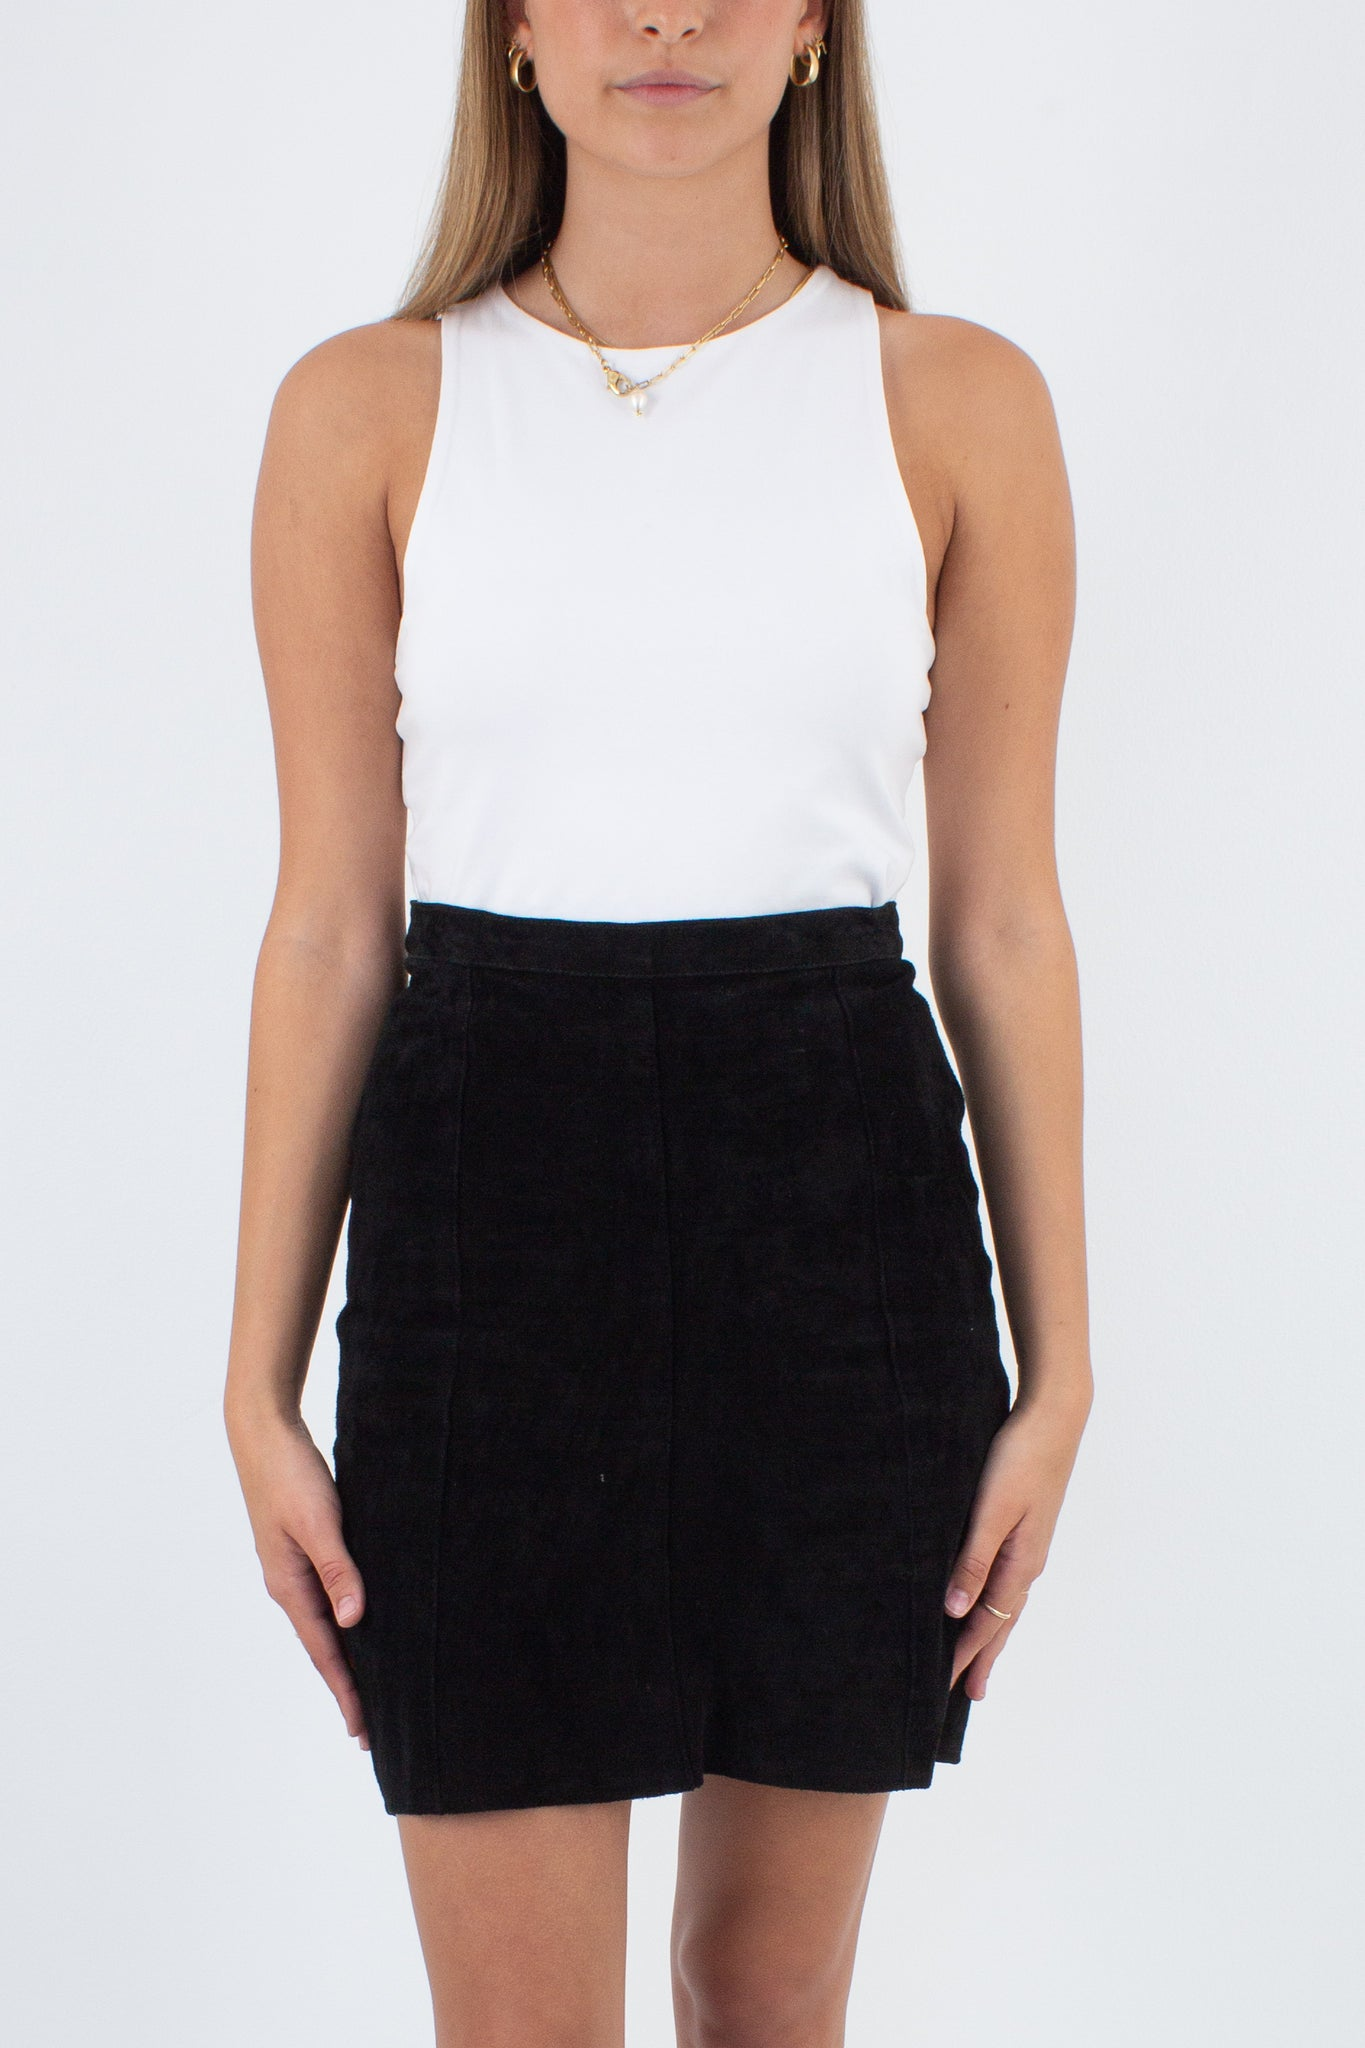 Black Suede Leather Mini Skirt - Size XS / 25""